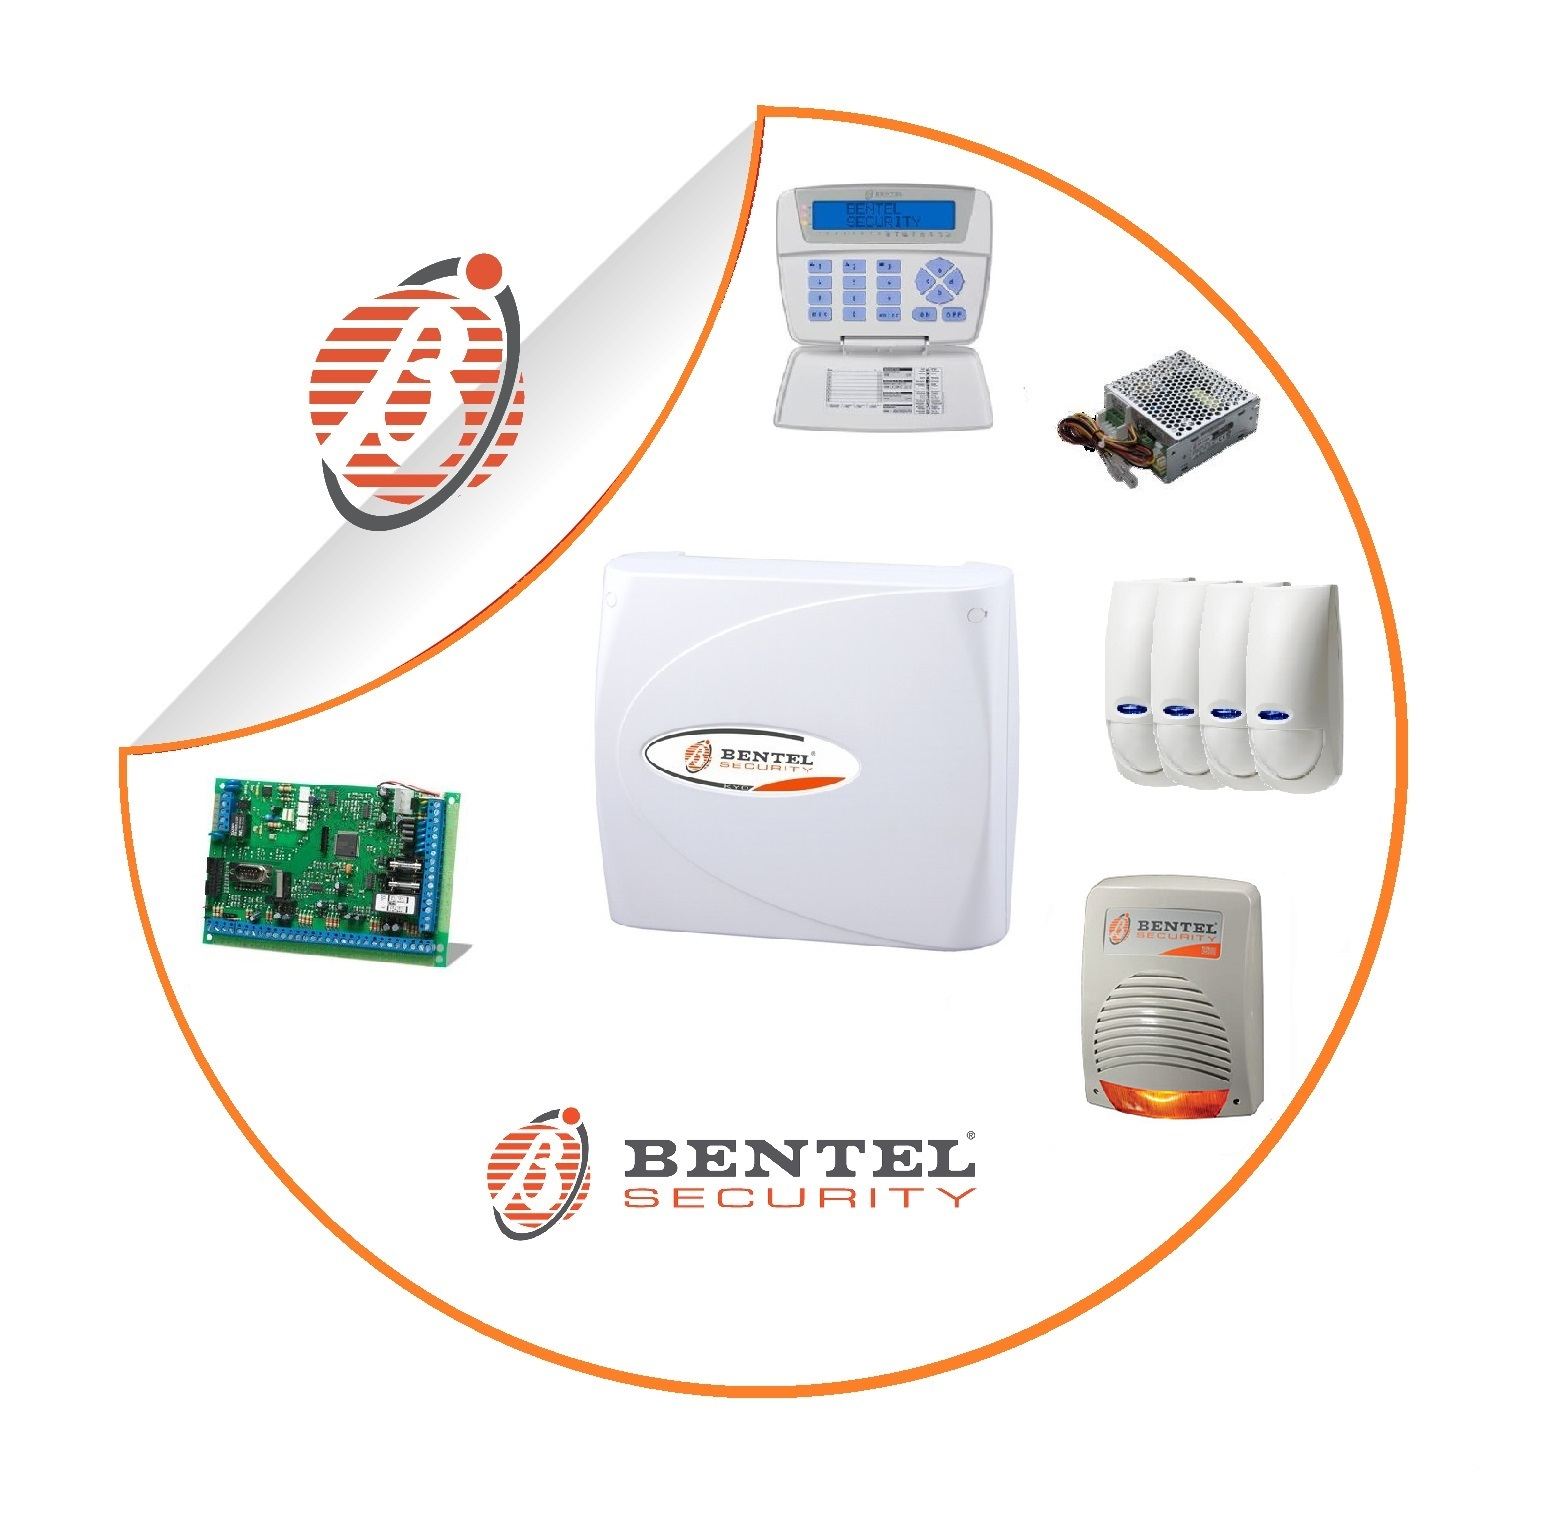 Kit centrale kyo32 bentel security pnp antifurti for Bentel call pi